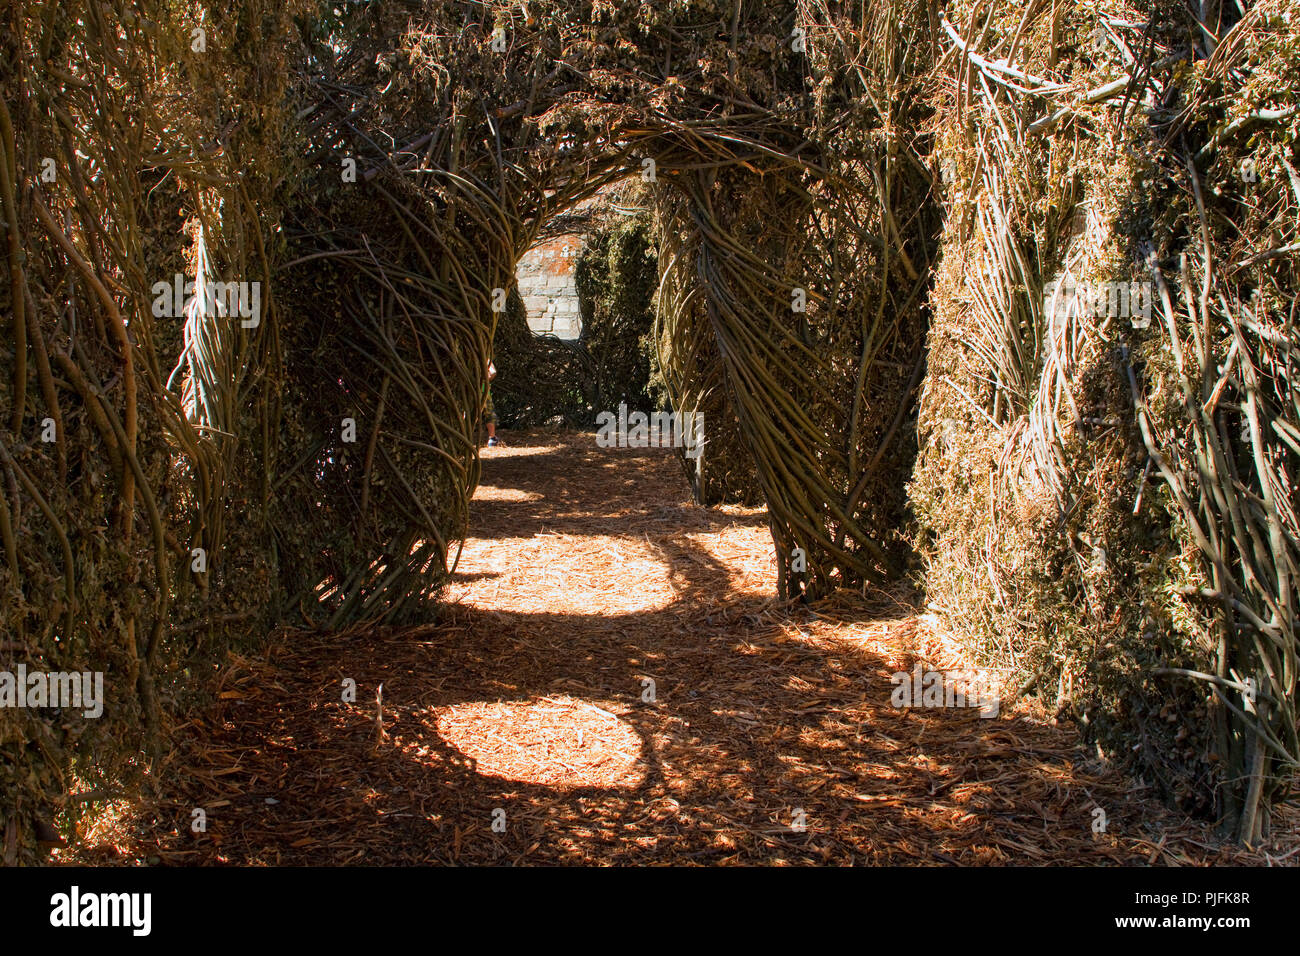 France, North-Western France, Nantes, moats of the Chateau des Ducs during the 'Voyage à Nantes' festival, summer 2014, labyrinth of willow branches by the US artist Patrick Dougherty - Stock Image